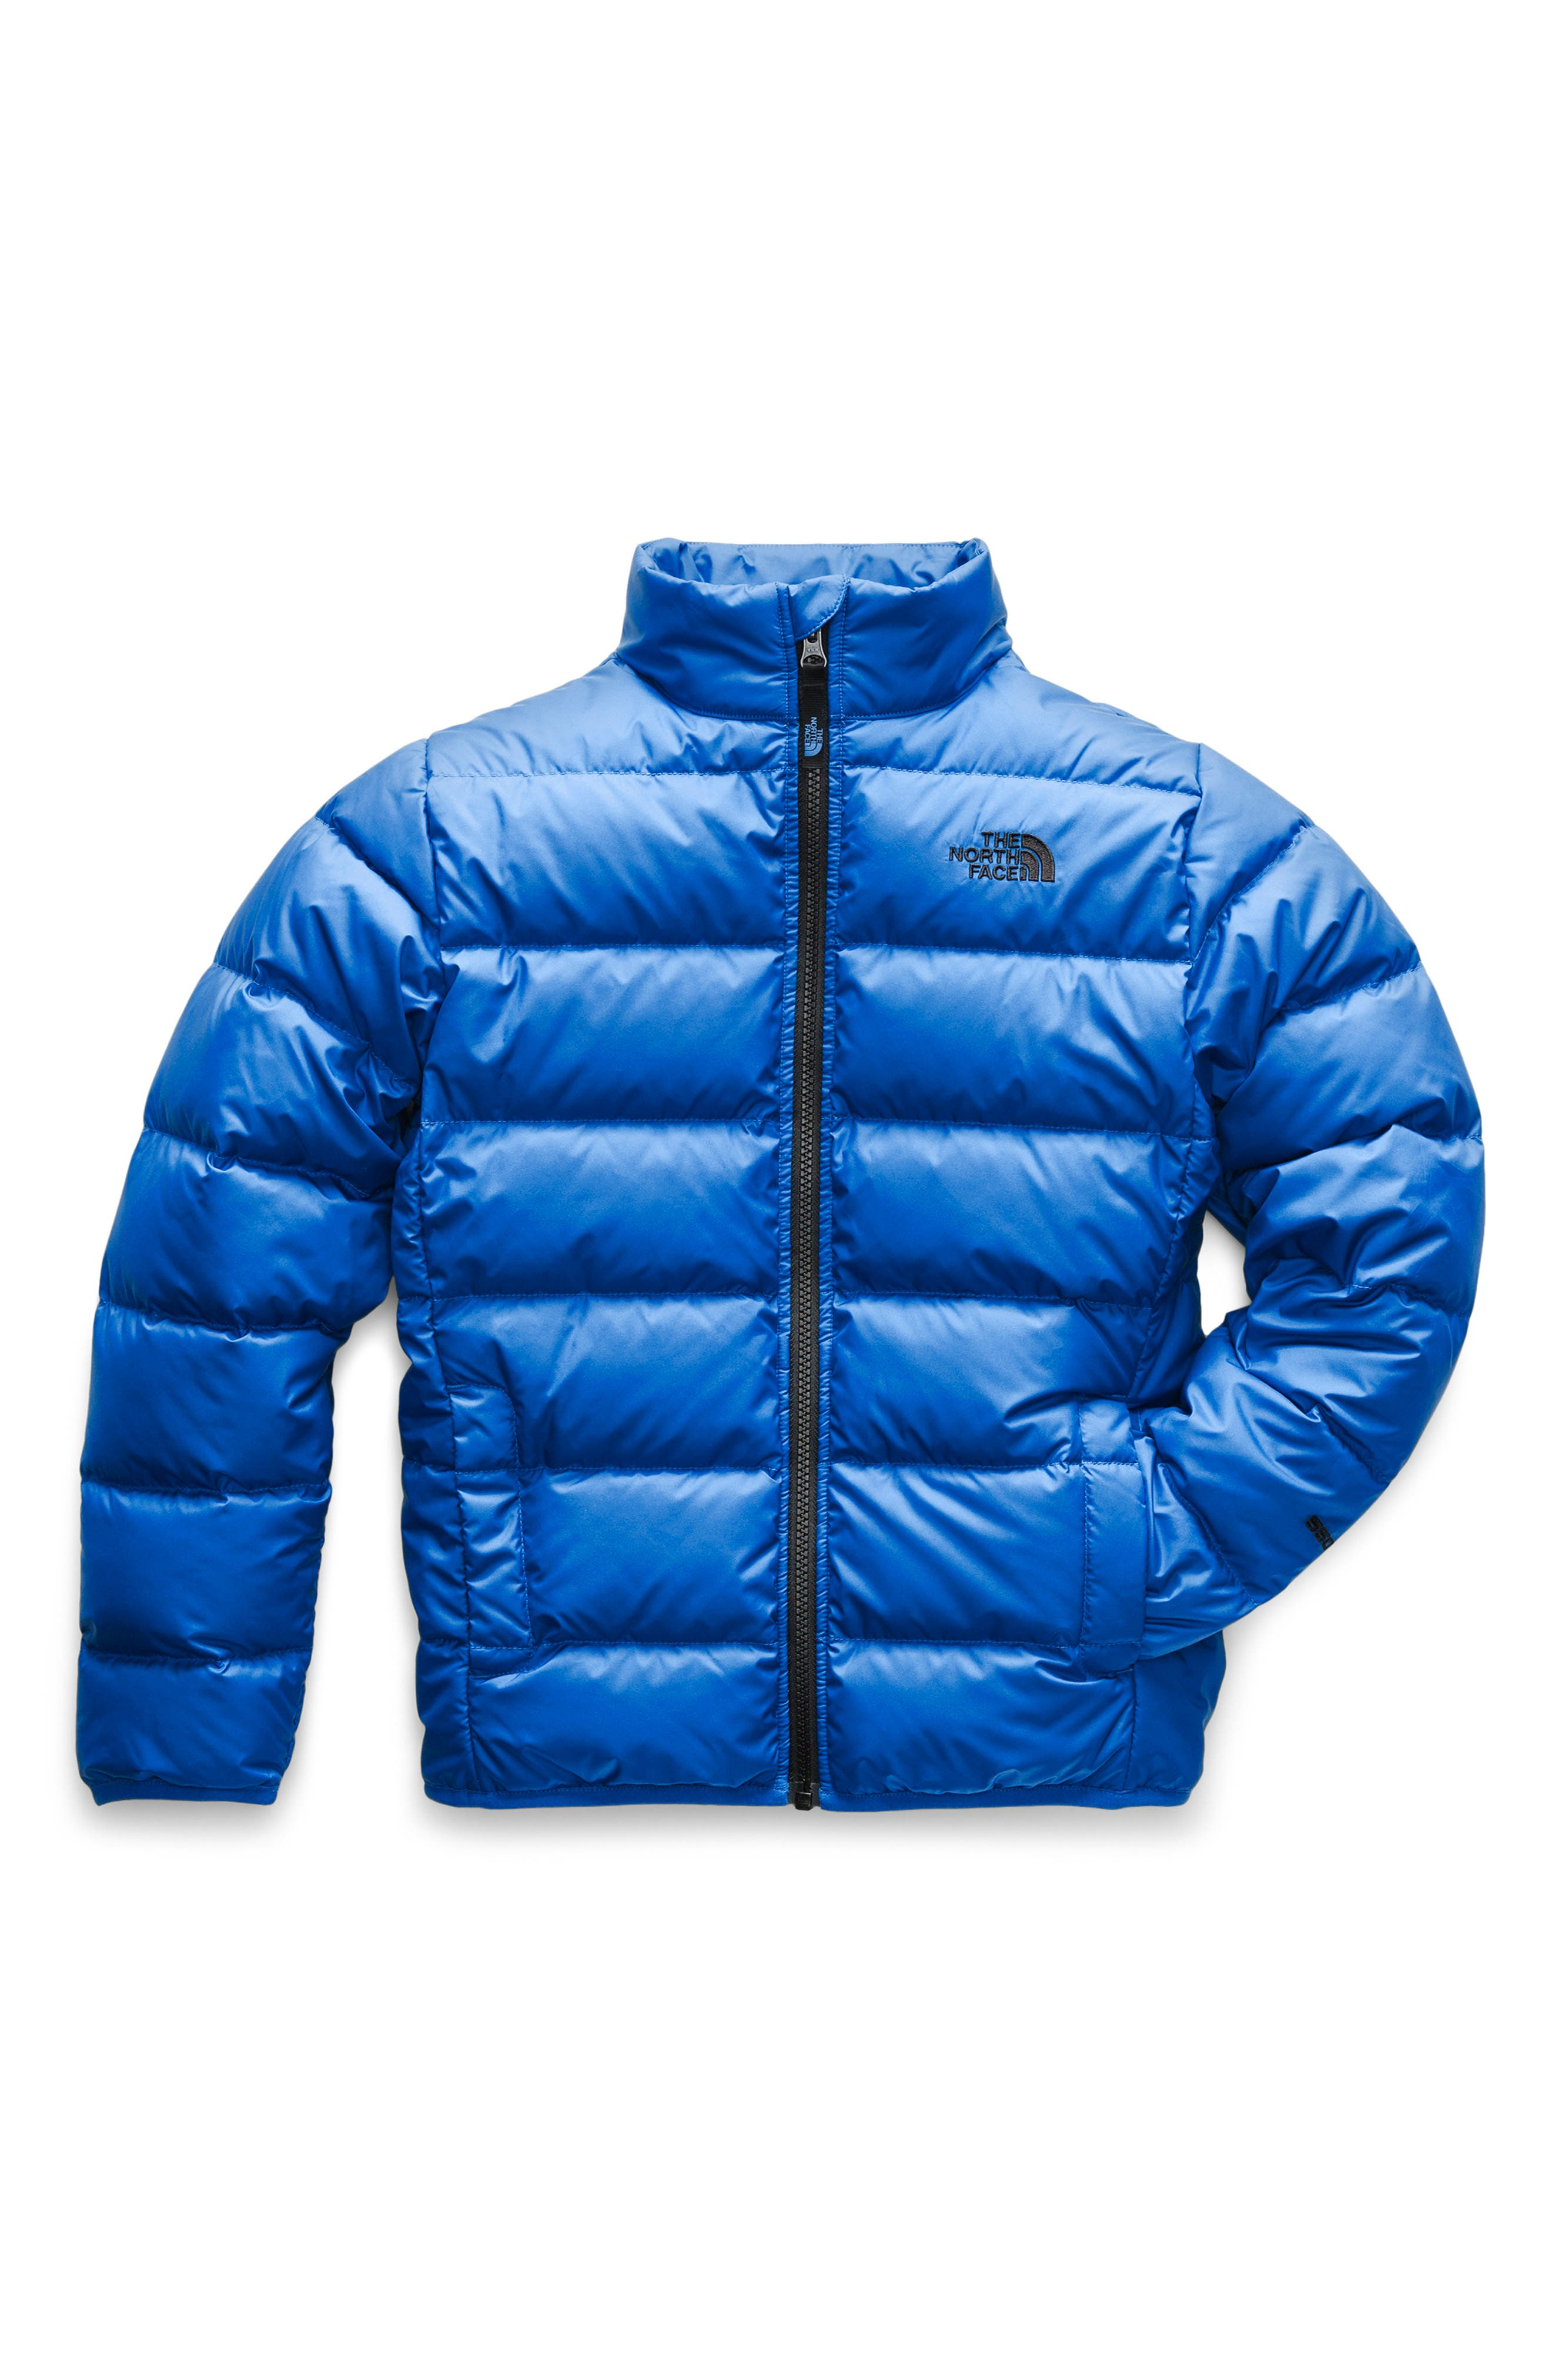 Andes Water Repellent 550-Fill Power Down Jacket,                             Main thumbnail 1, color,                             403